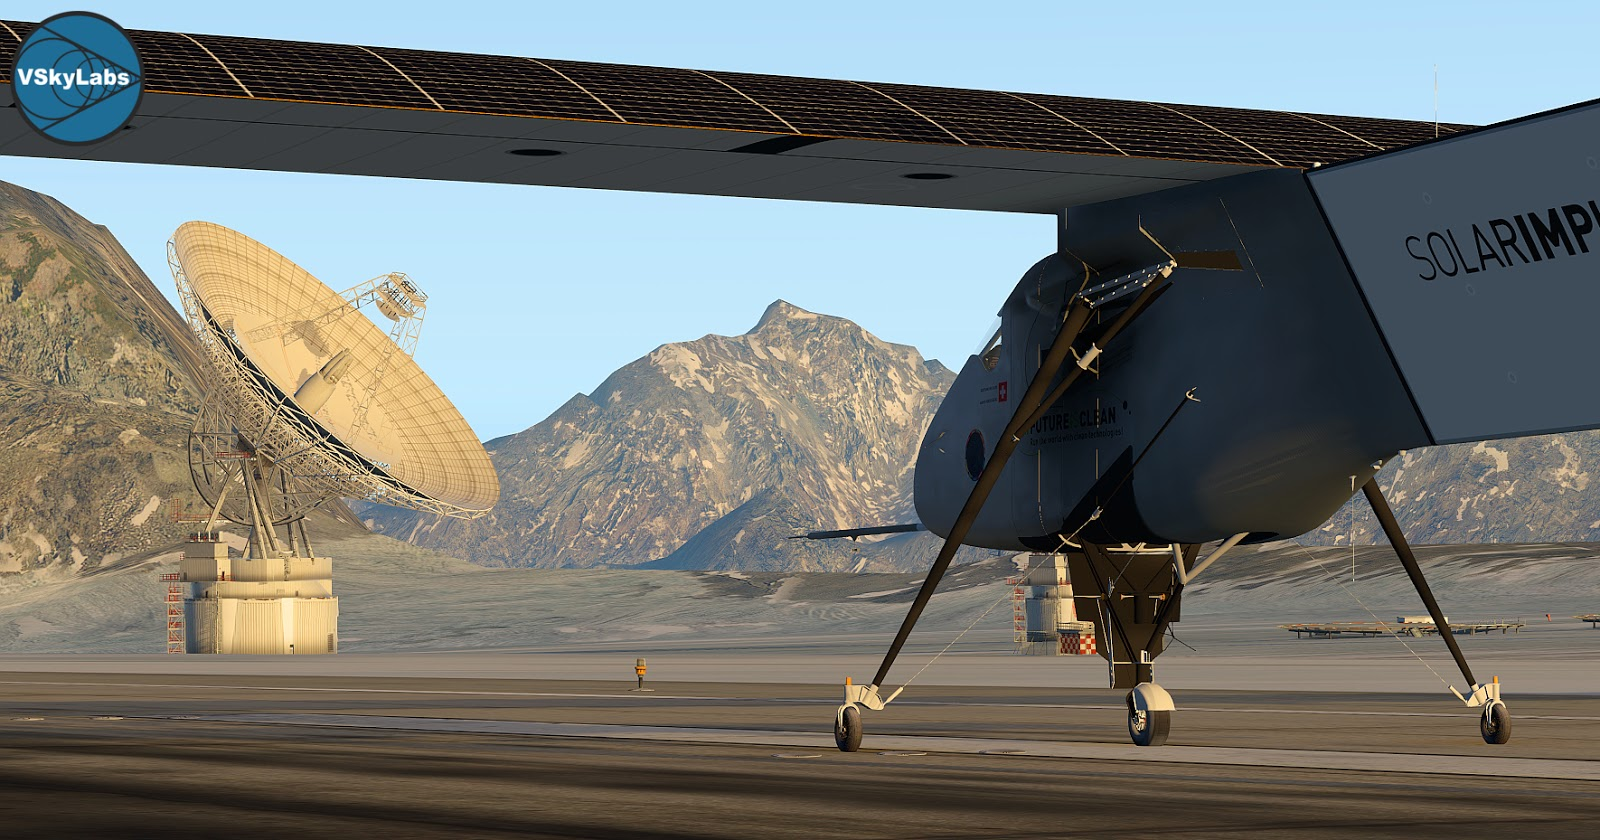 COMING SOON! VSKYLABS Solar Impulse 2